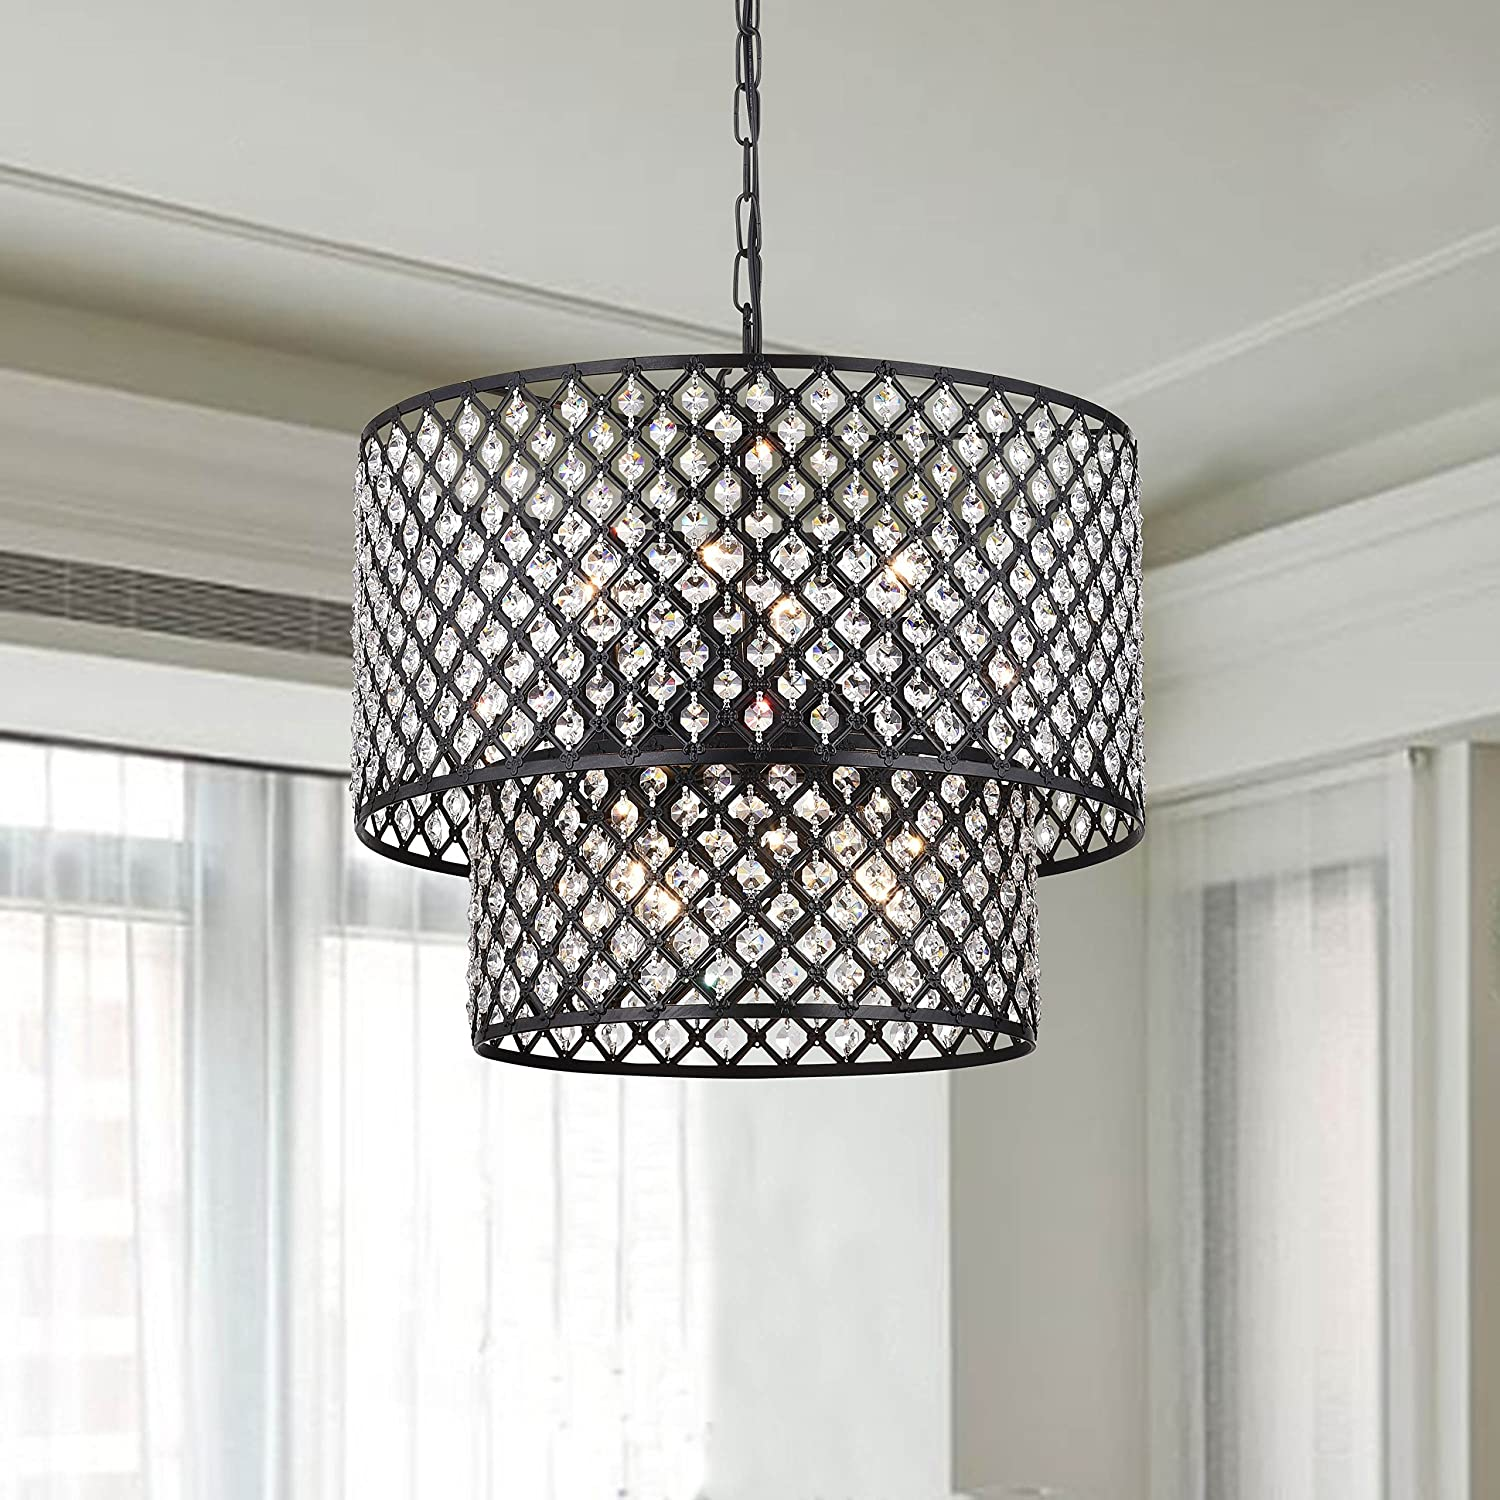 Antique black 8 light double round crystal chandelier amazon aloadofball Gallery